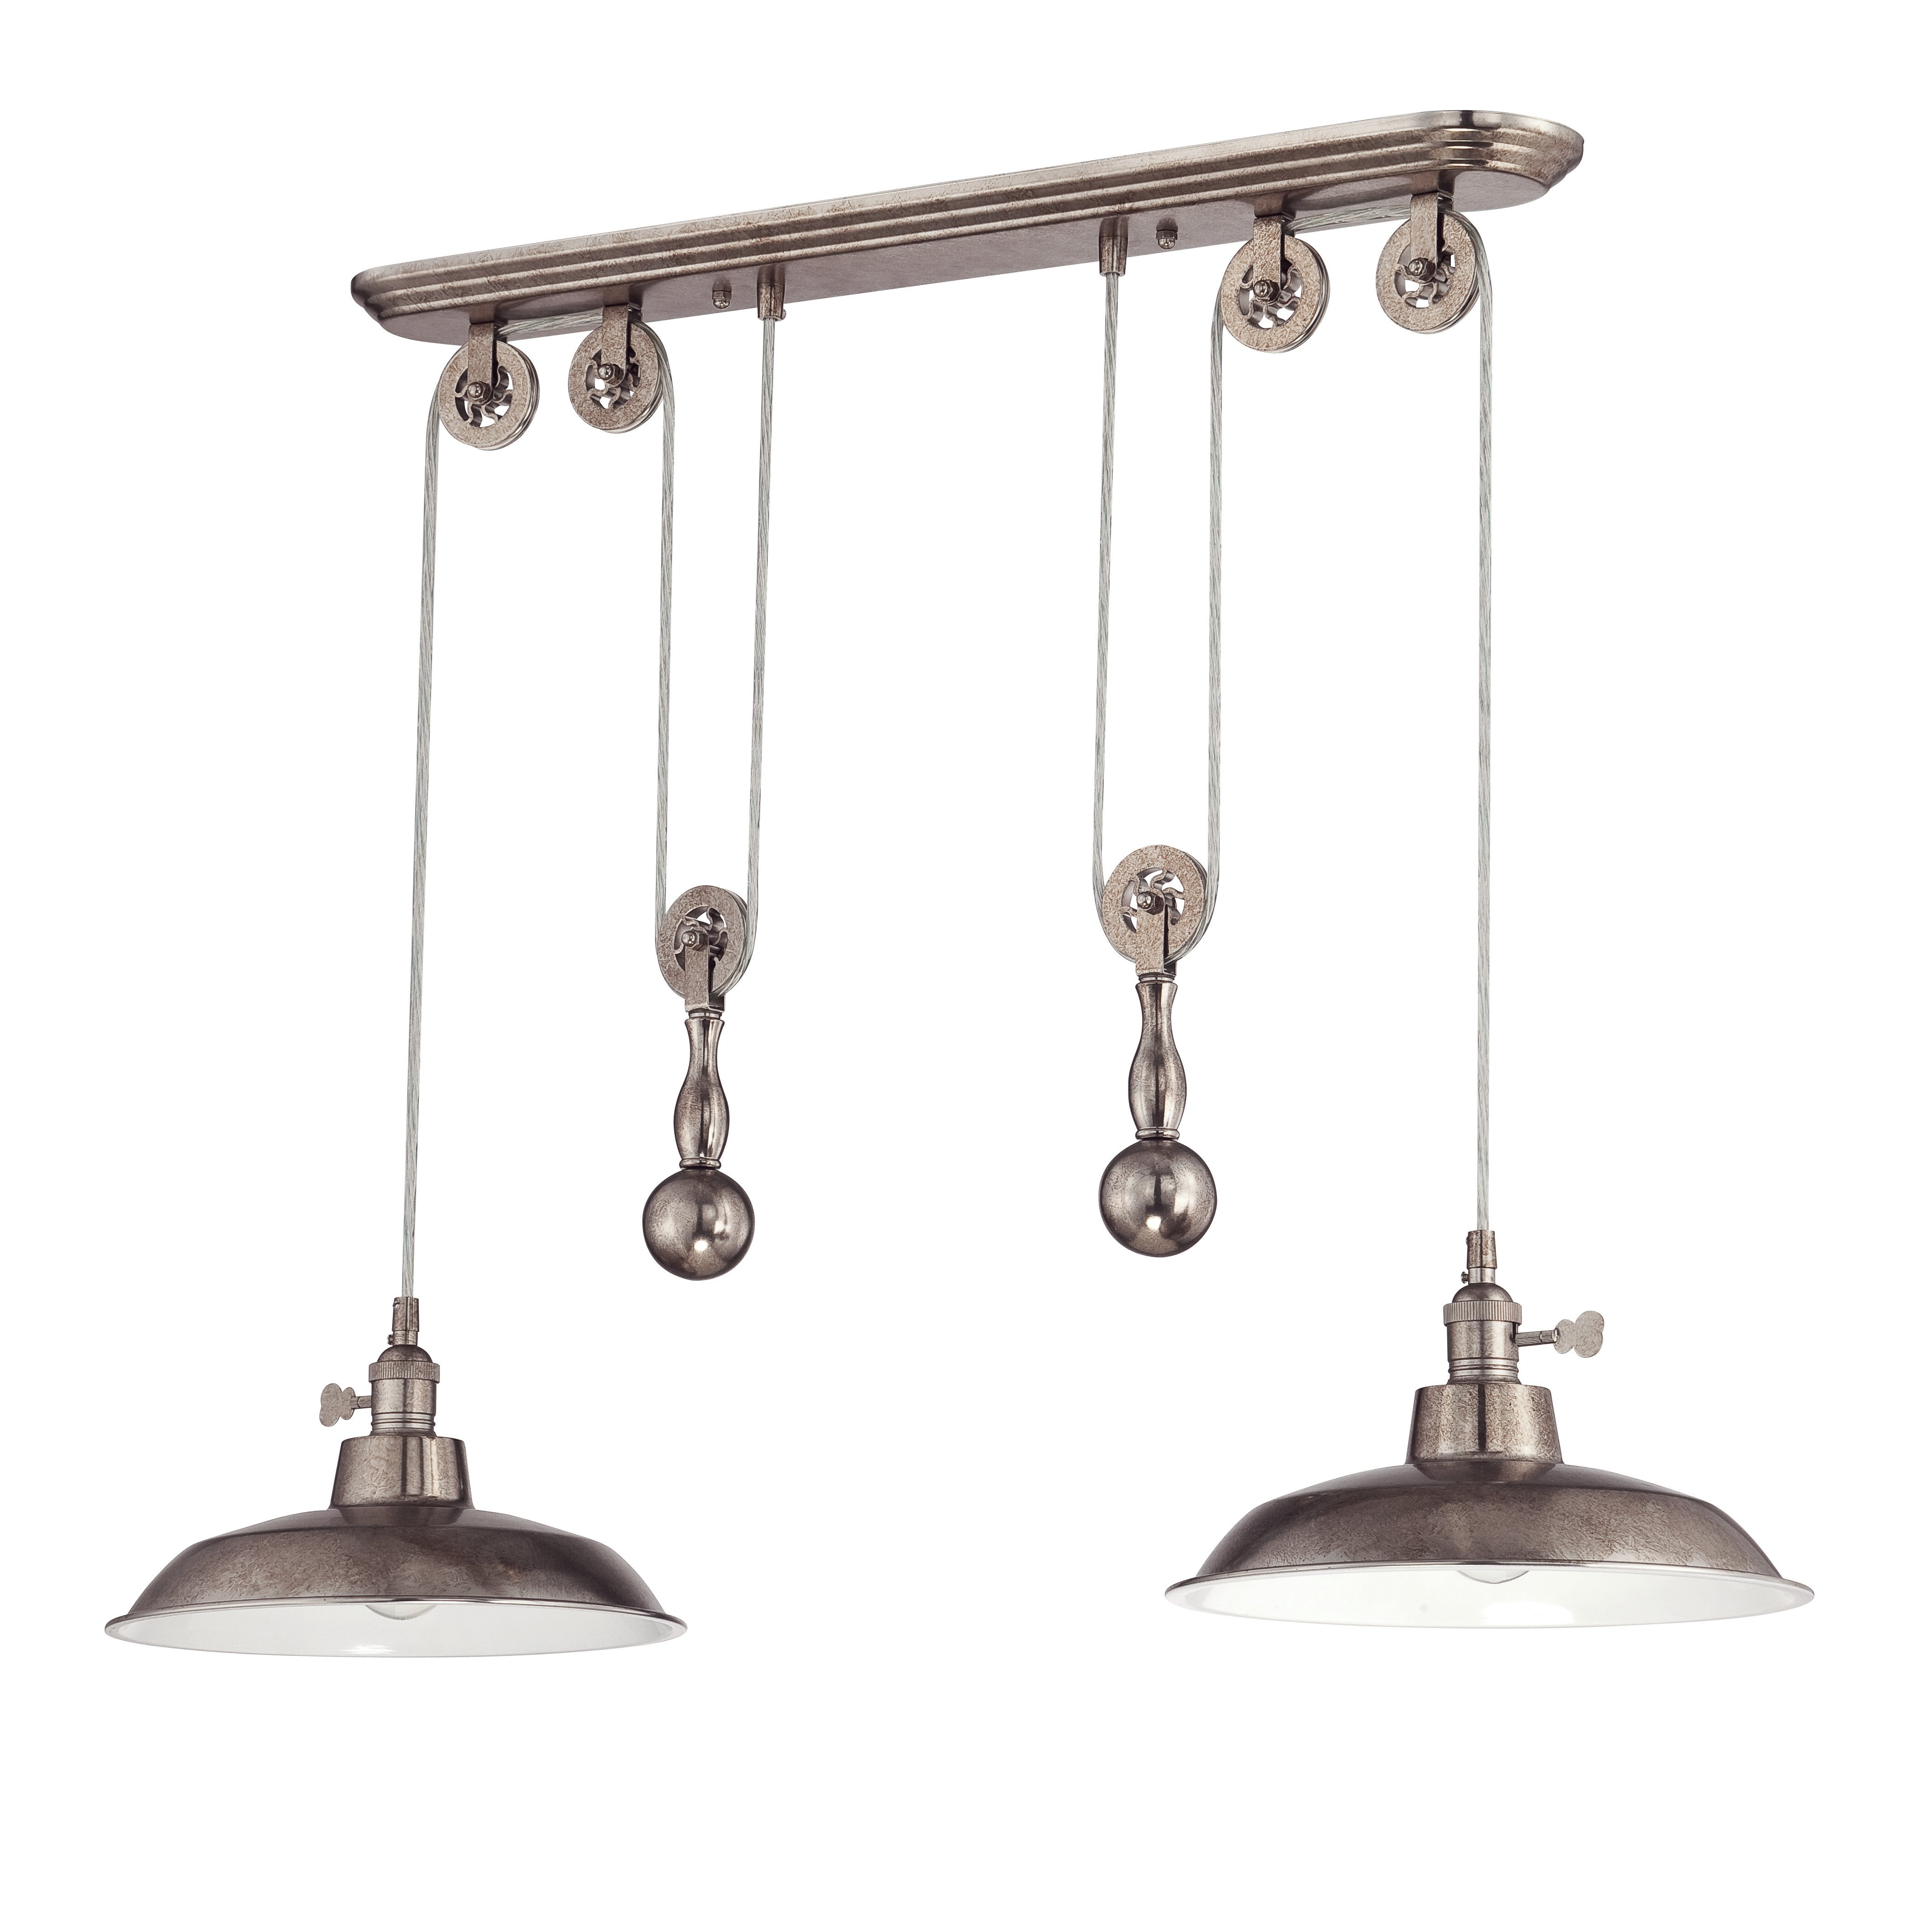 Newest Ariel 2 Light Kitchen Island Dome Pendant With Regard To Ariel 3 Light Kitchen Island Dome Pendants (View 21 of 25)